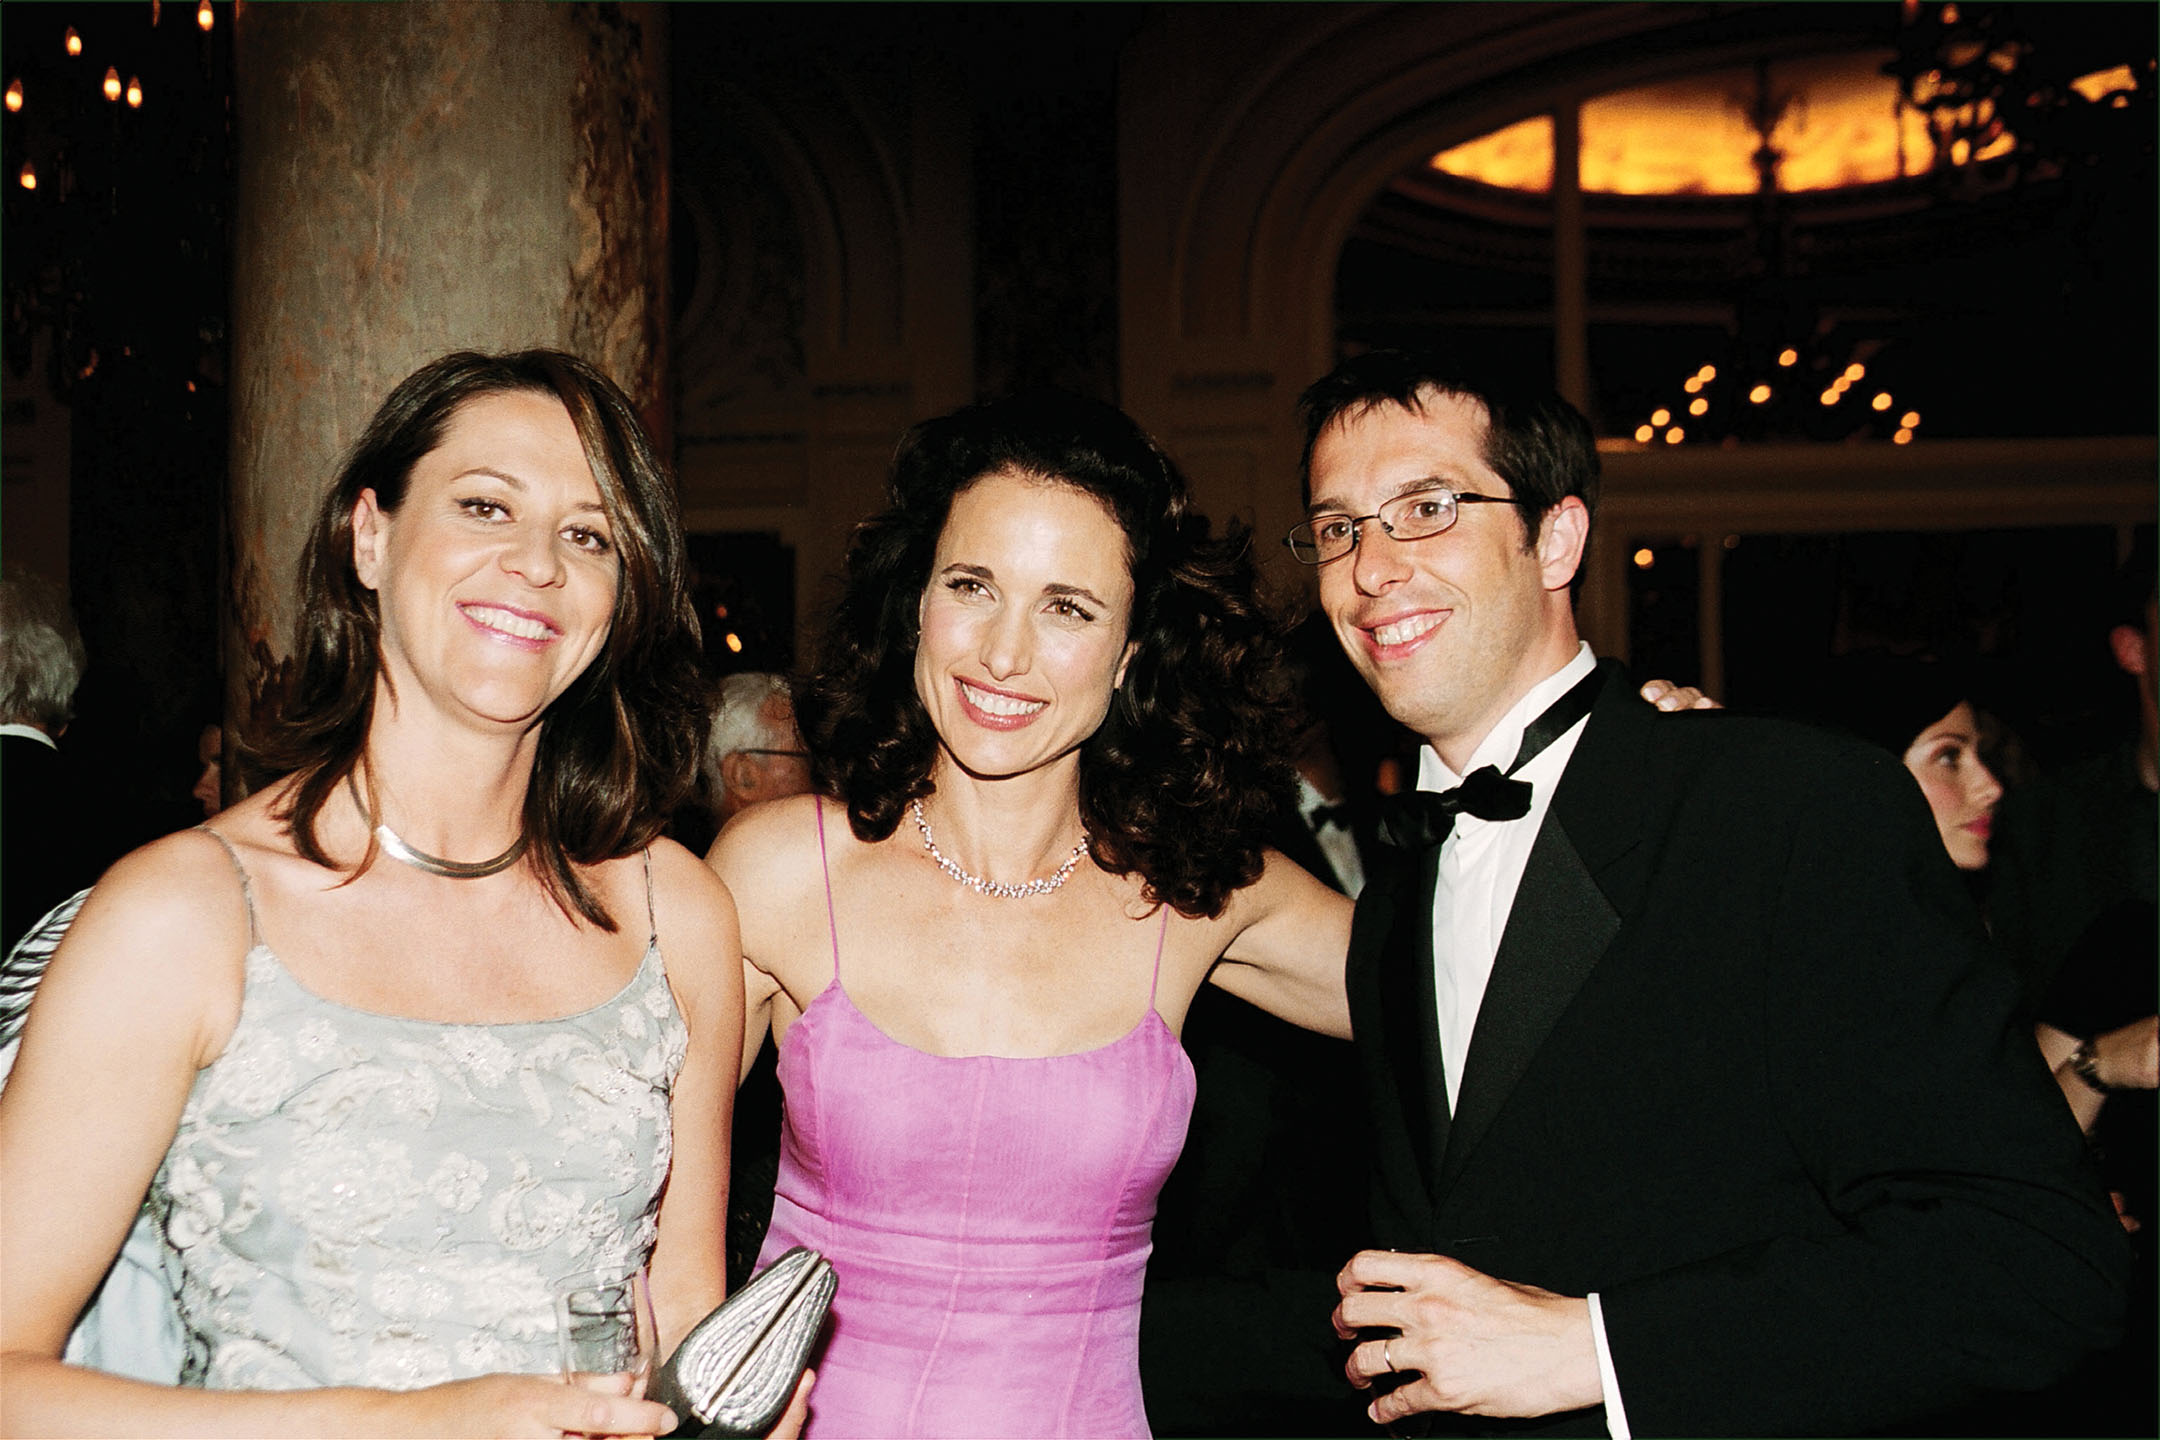 Nicolas with Géraldine and Andie MacDowell at the Cannes Film Festival in 2002.